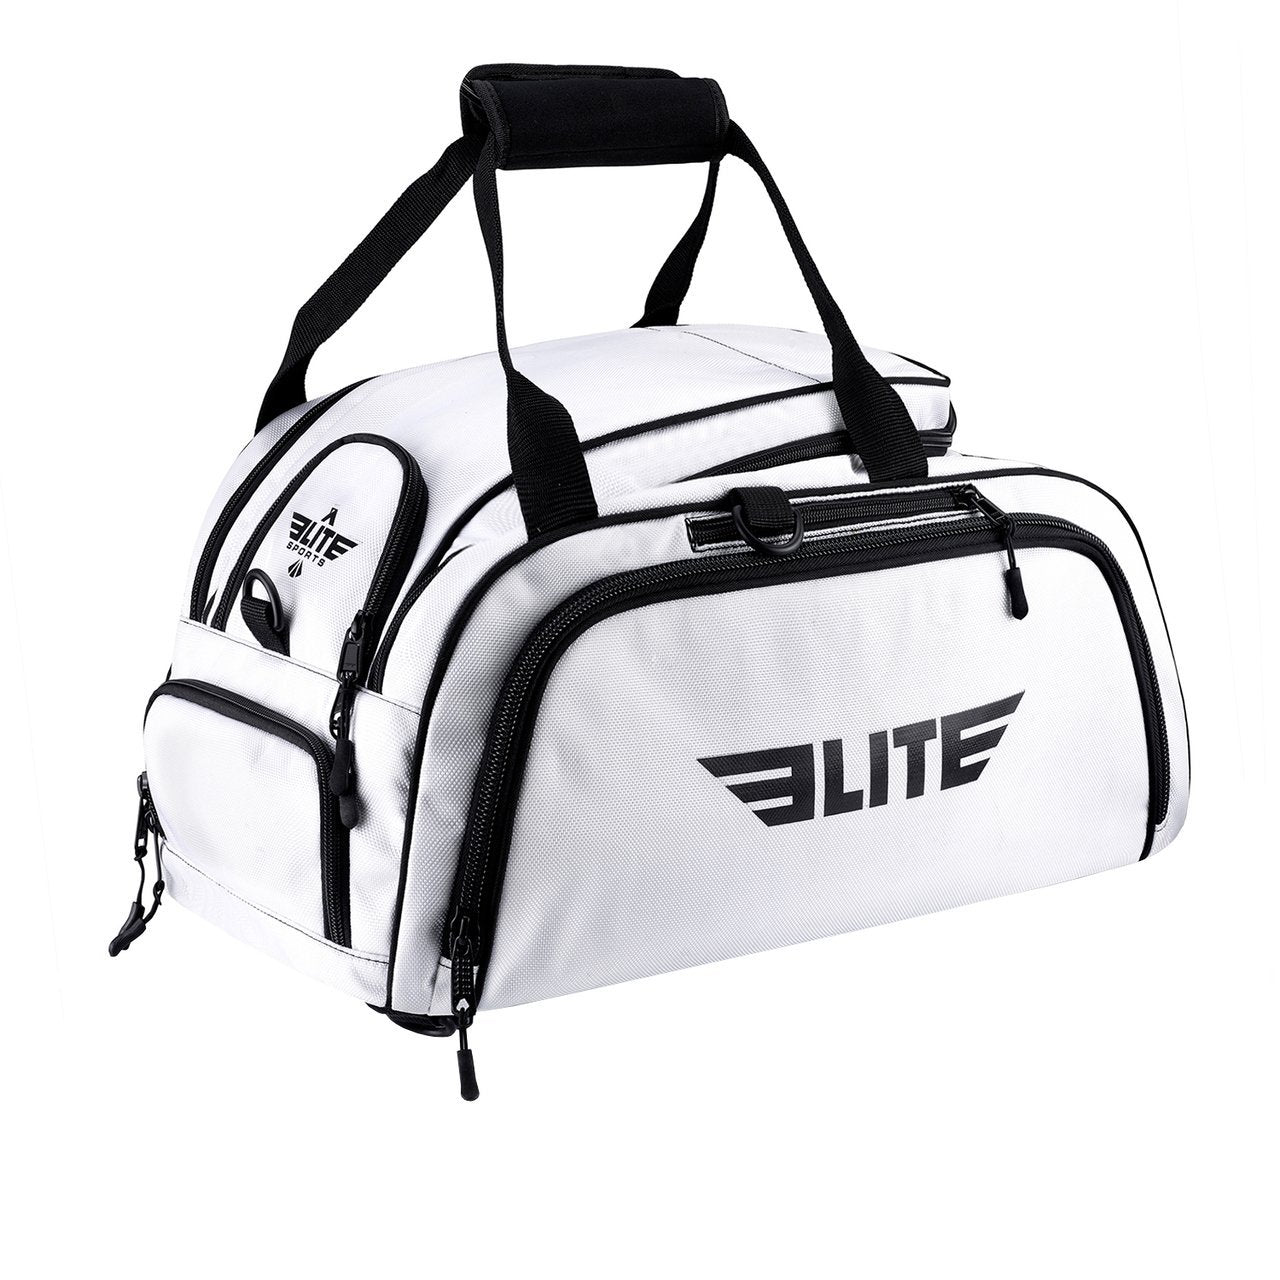 Load image into Gallery viewer, Elite Sports Warrior Series White Medium Duffel Crossfit Gear Gym Bag & Backpack